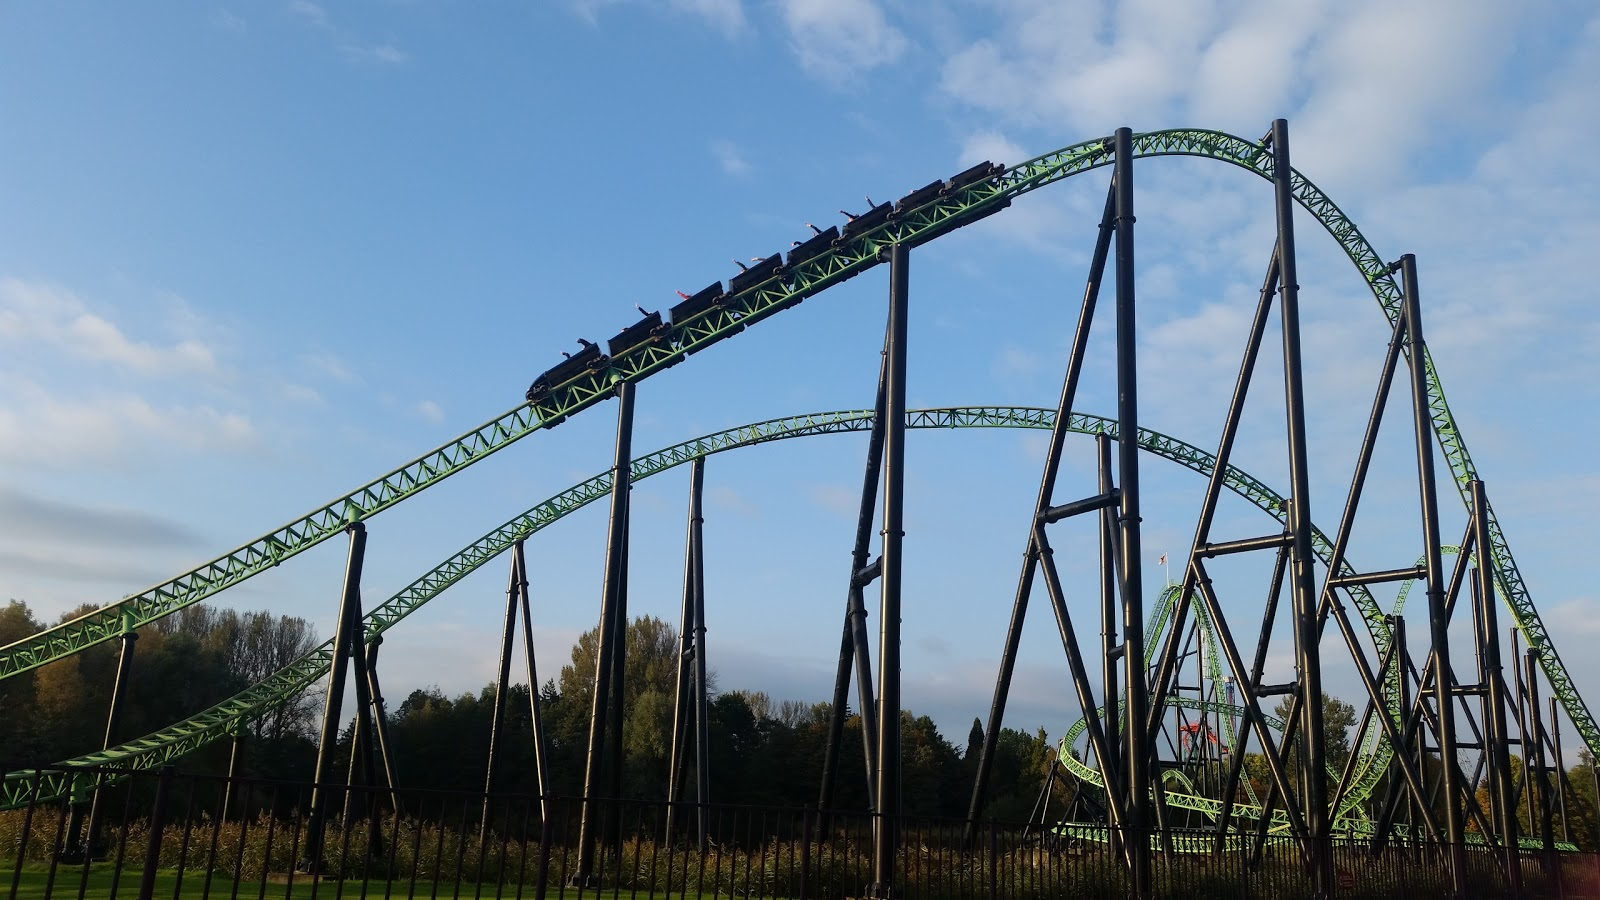 Goliath in Walibi